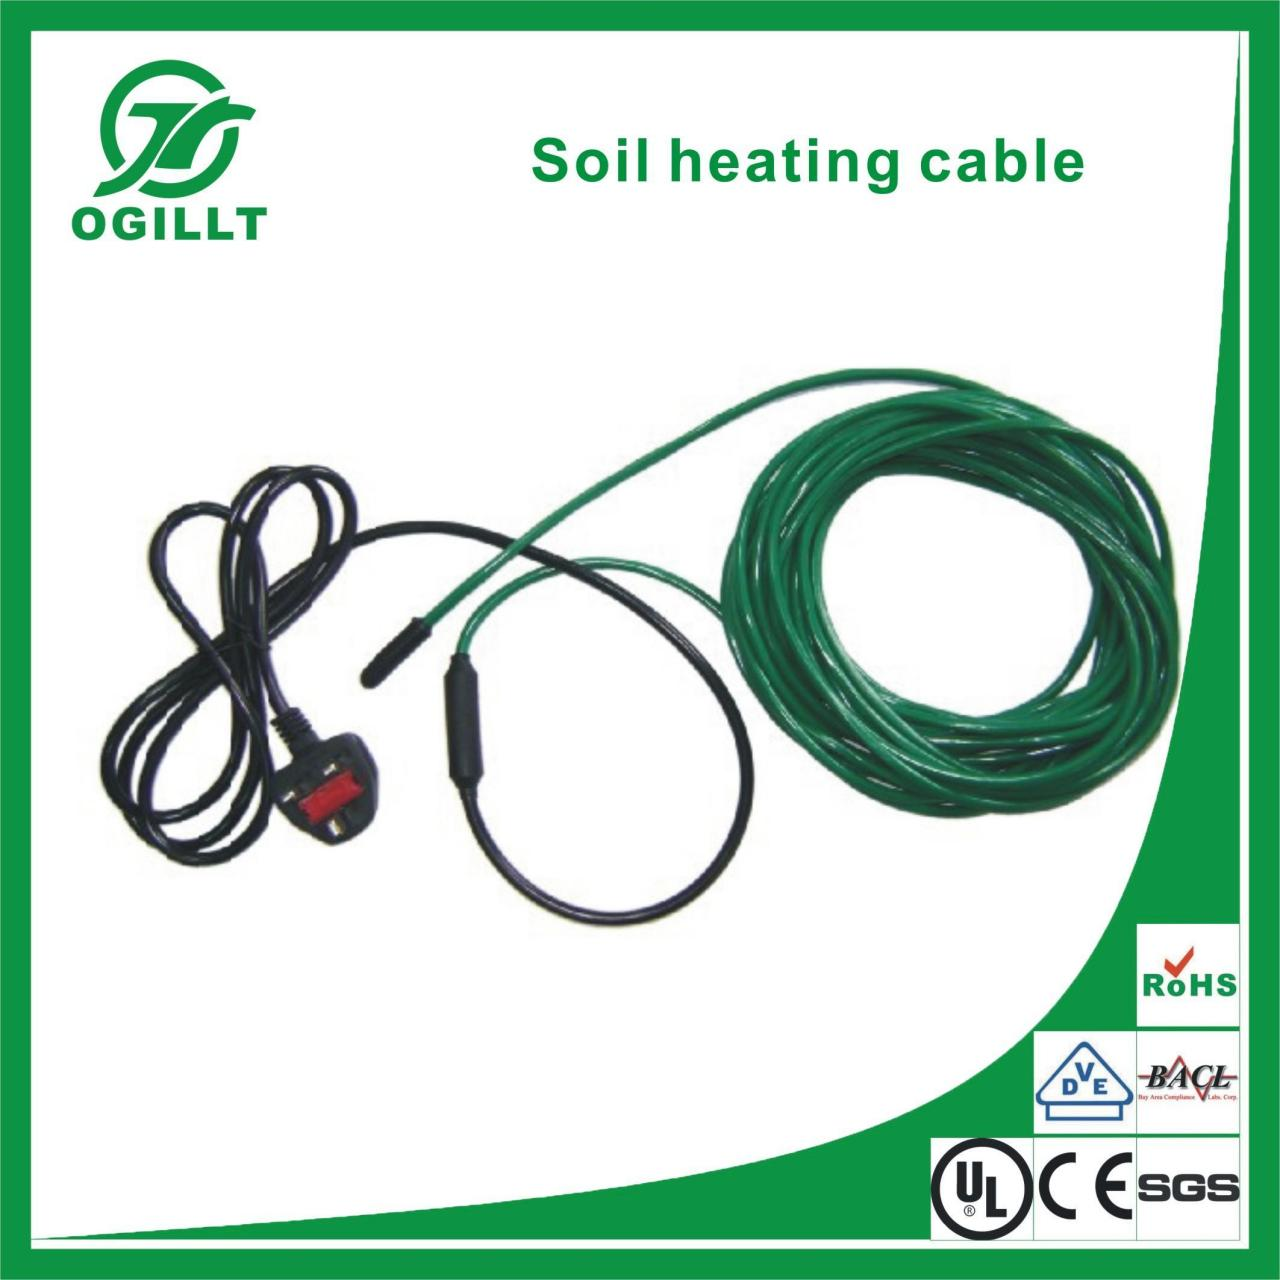 Soil Heating Cable Images